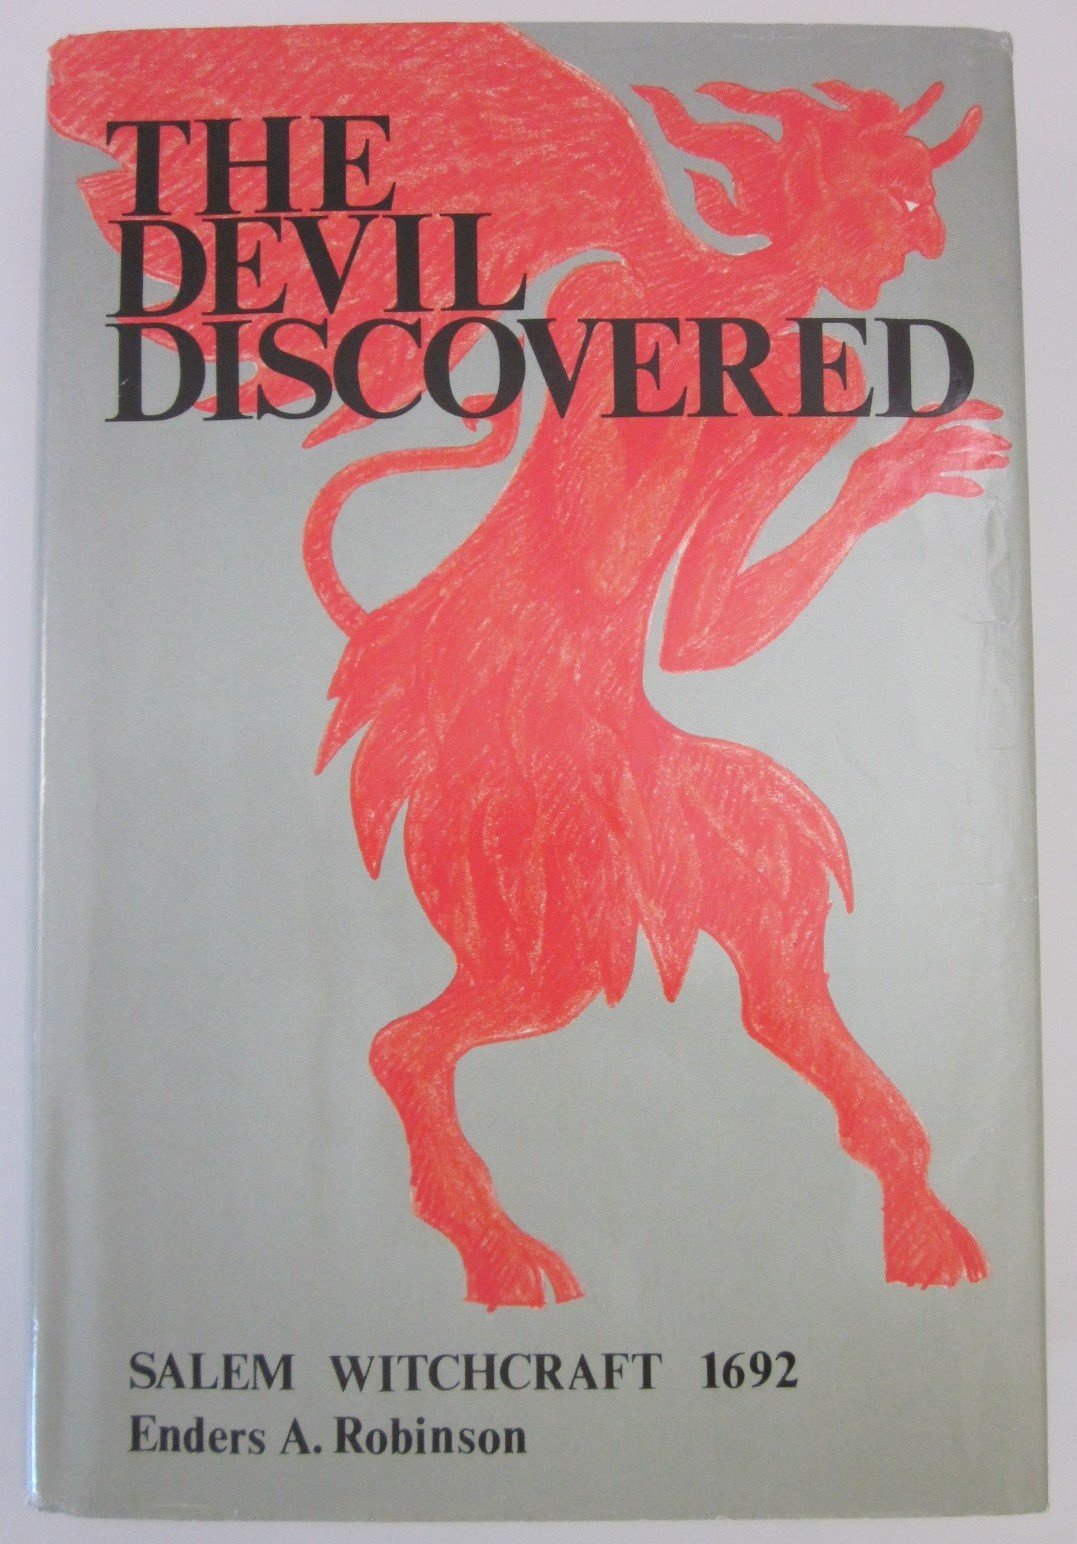 The Devil Discovered: Salem Witchcraft 1692